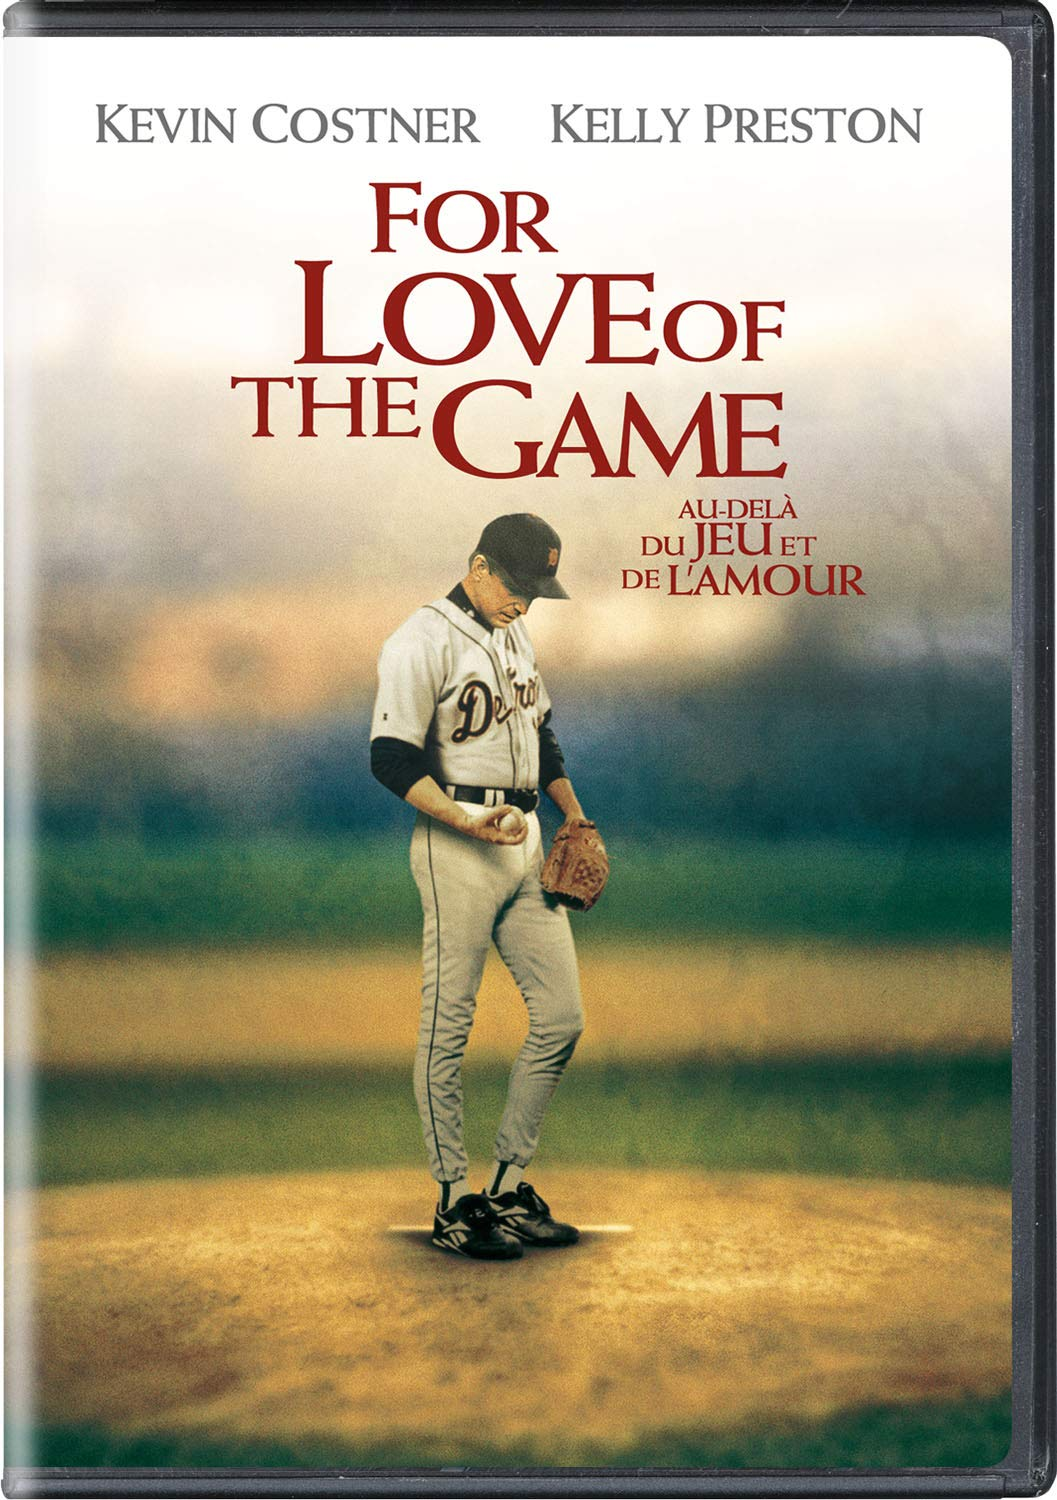 Amazon.com: For Love of the Game: Kevin Costner, Kelly Preston ...